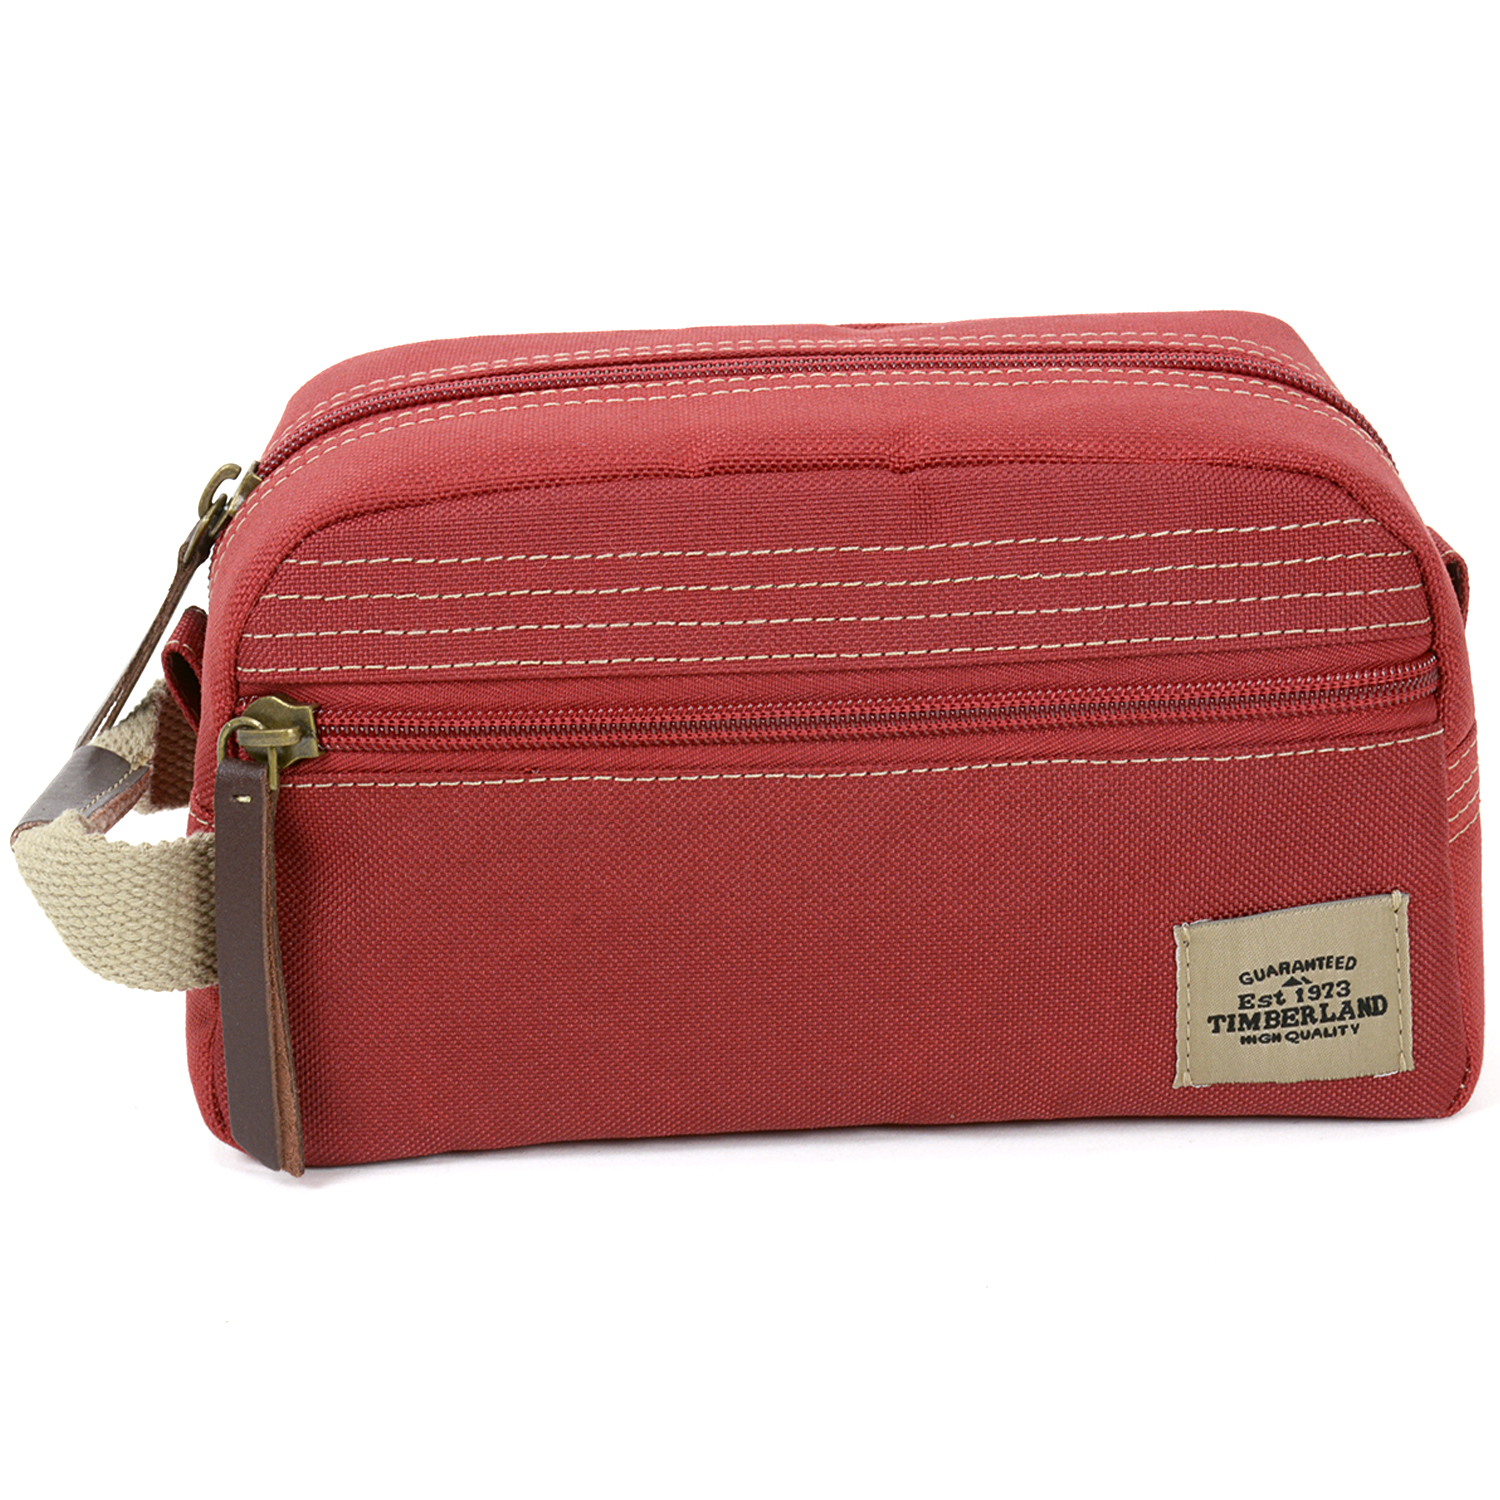 Timberland Travel Kit Toiletry Bag Overnight Handle Case Canvas Shaving Dopp  Kit 9321a60ff6